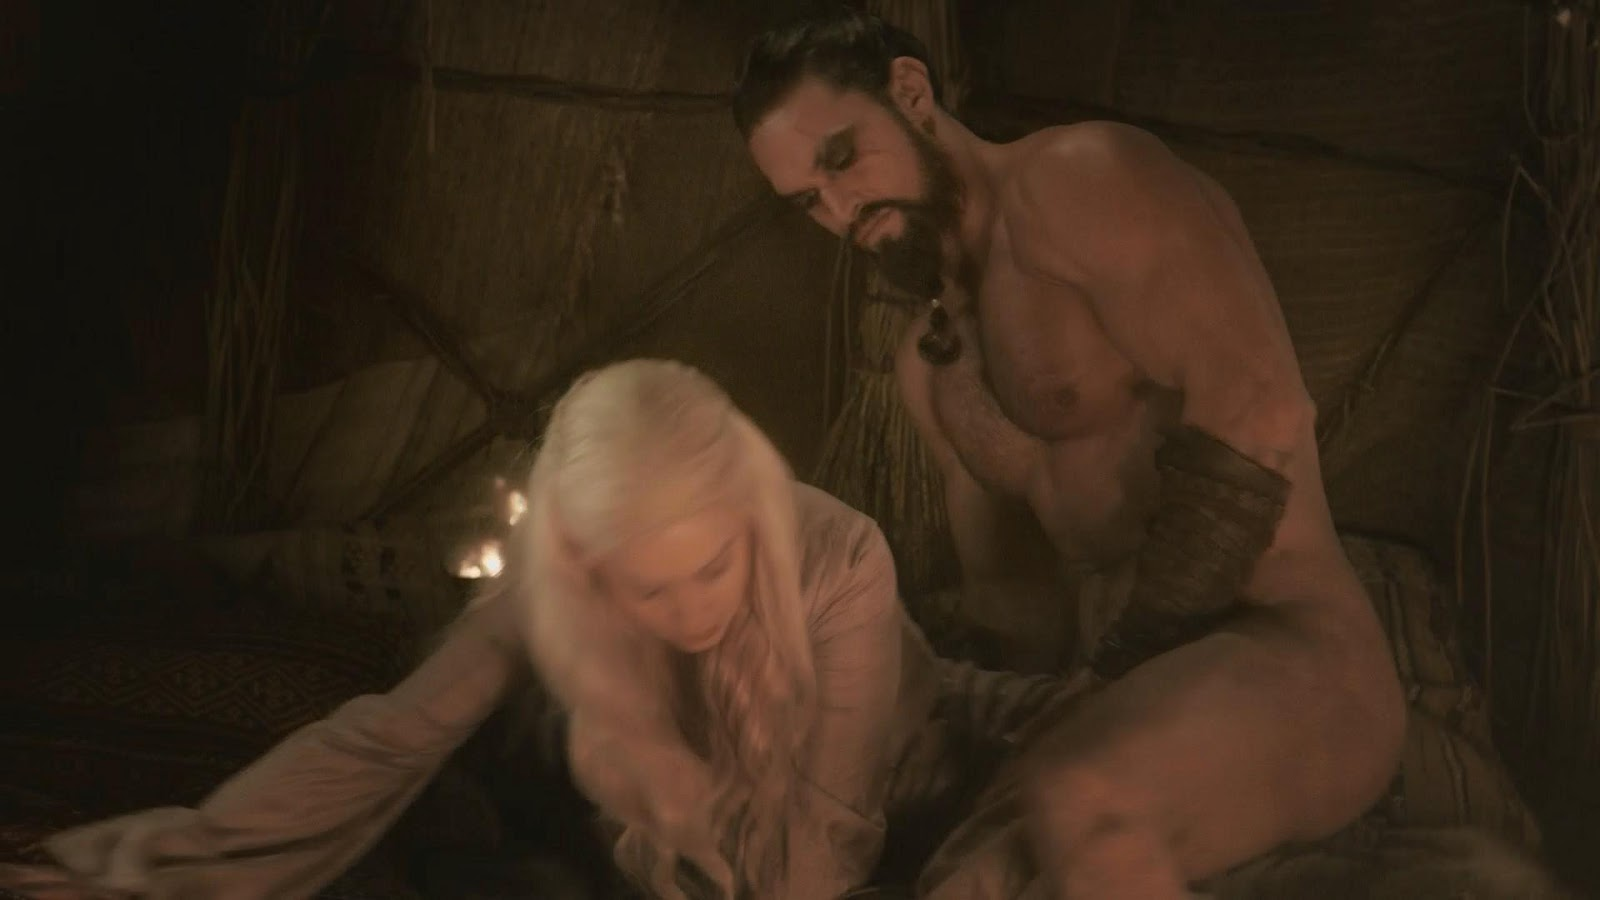 Consider, that Jason momoa game of thrones nude magnificent idea